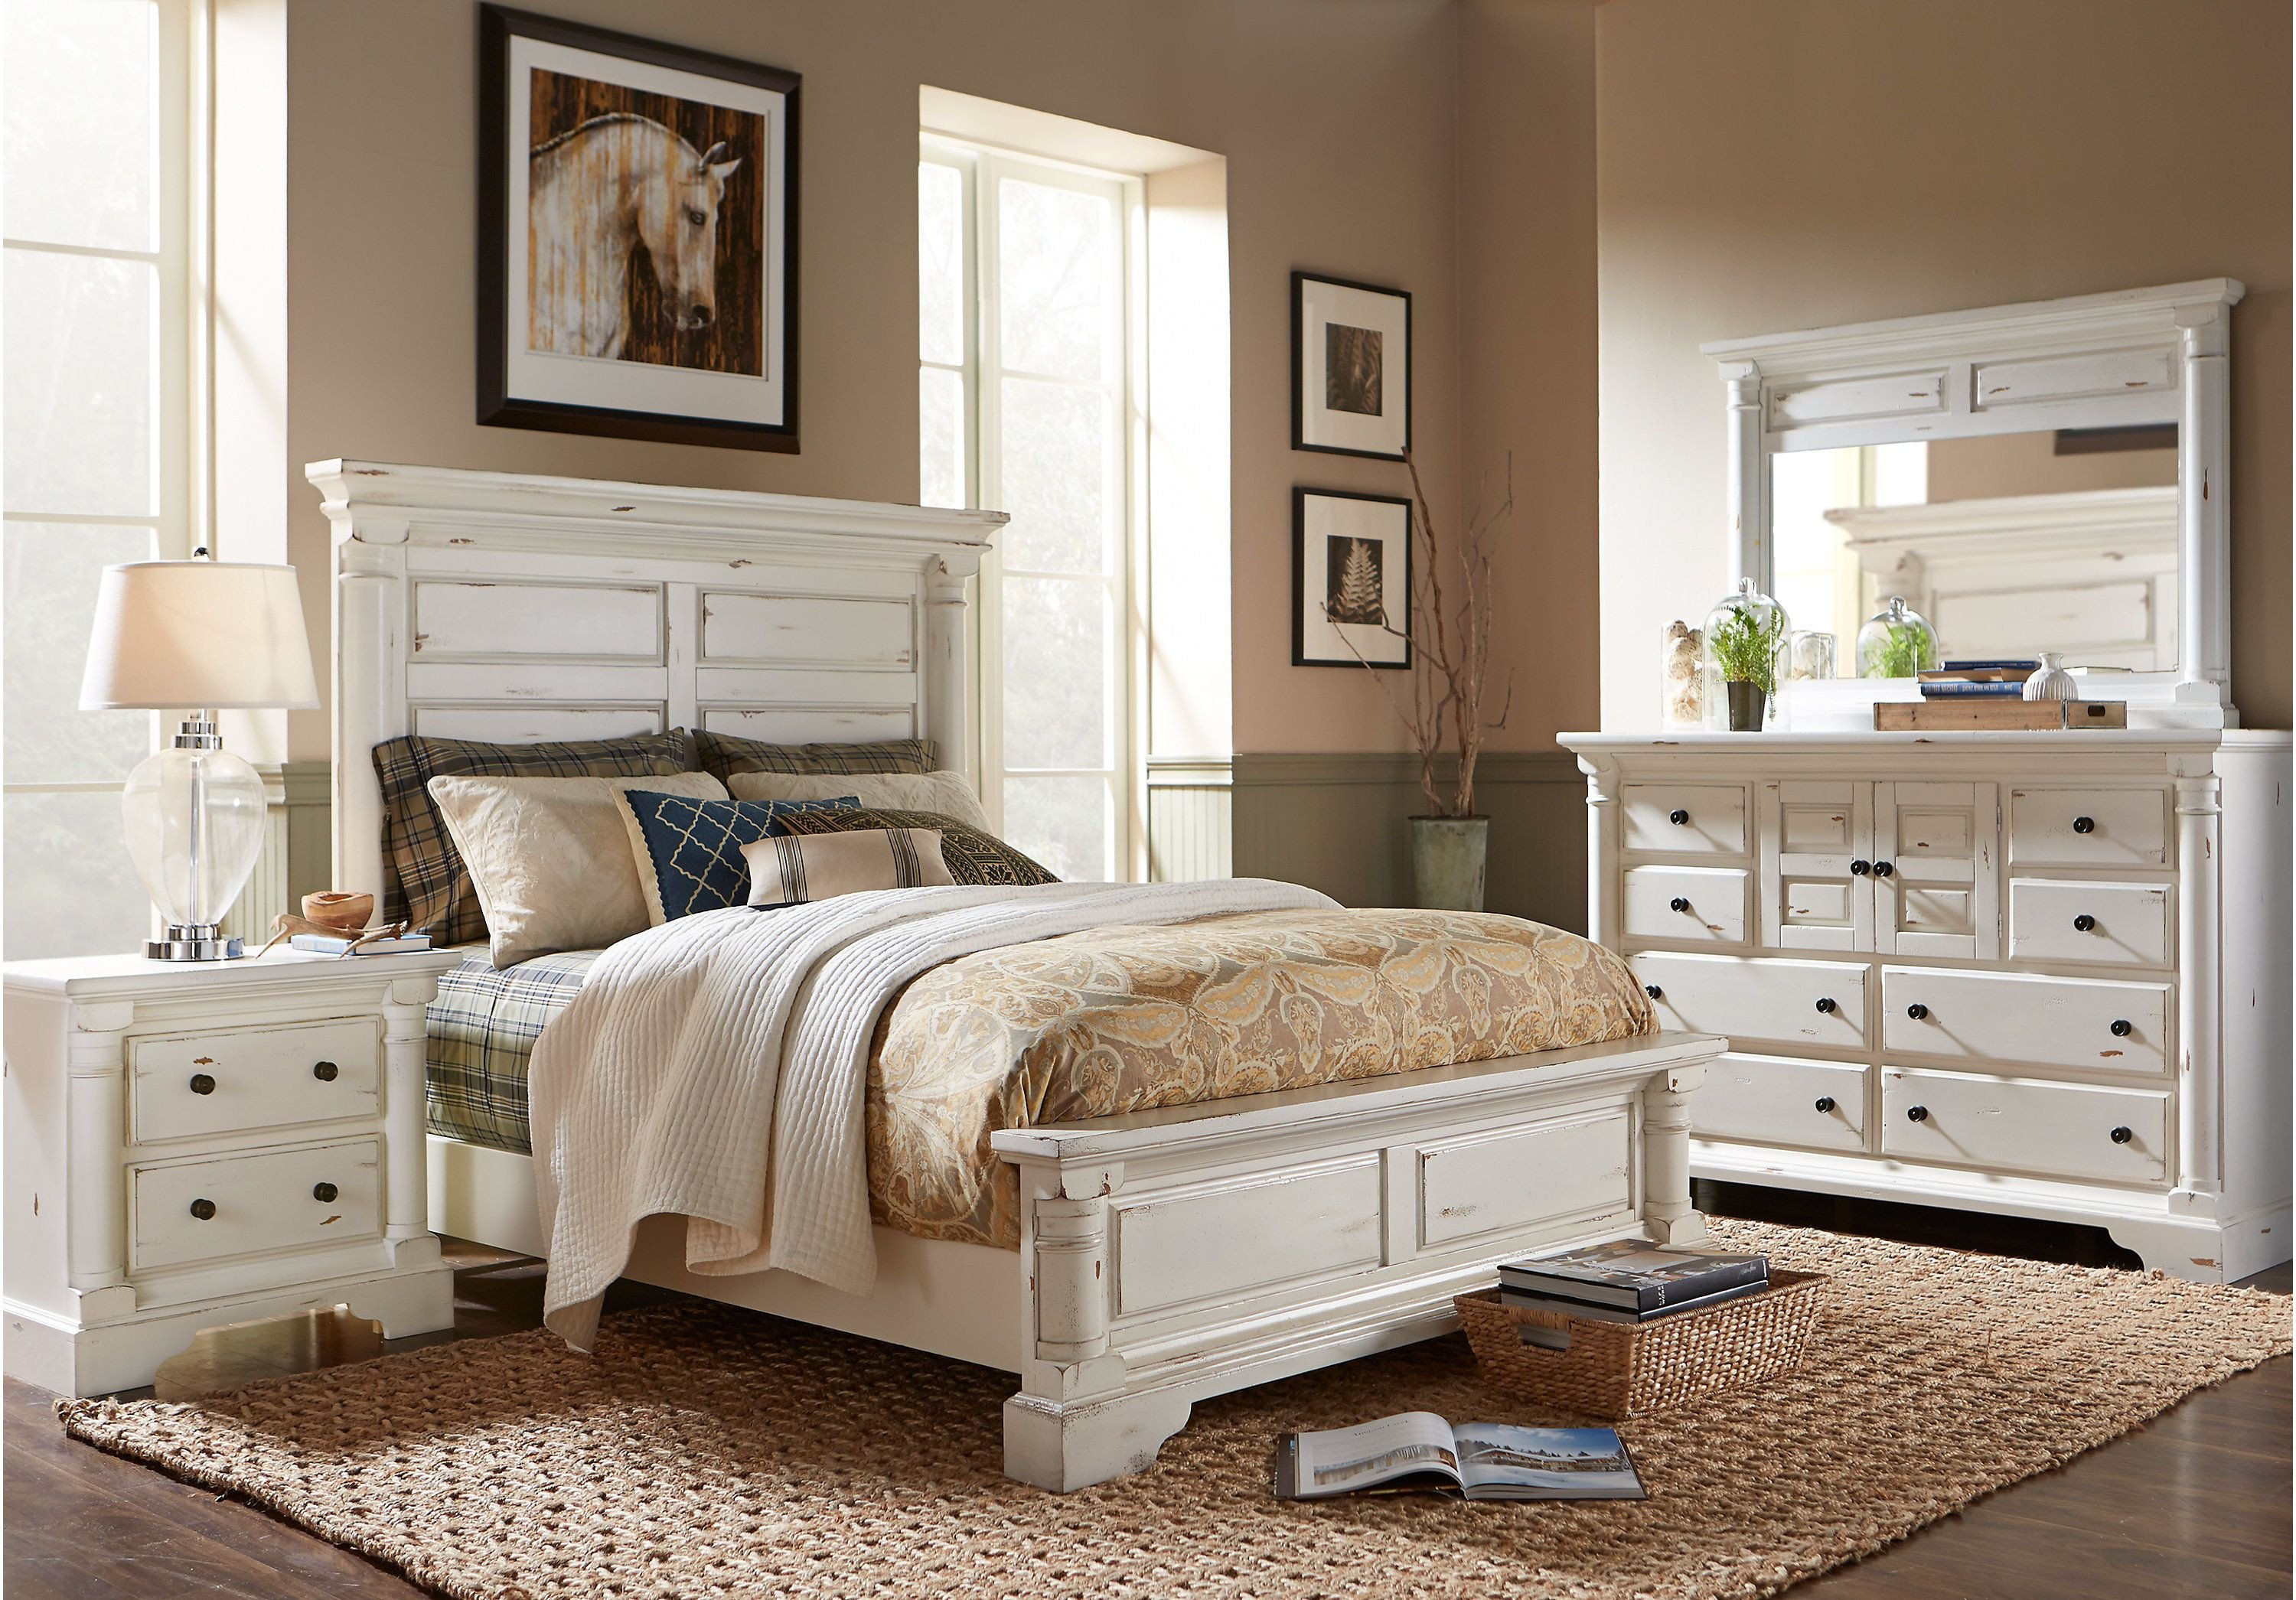 Rooms to Go Kid Bedroom Set Awesome Bedroom Charming Roomstogokids with Beautiful Decor for